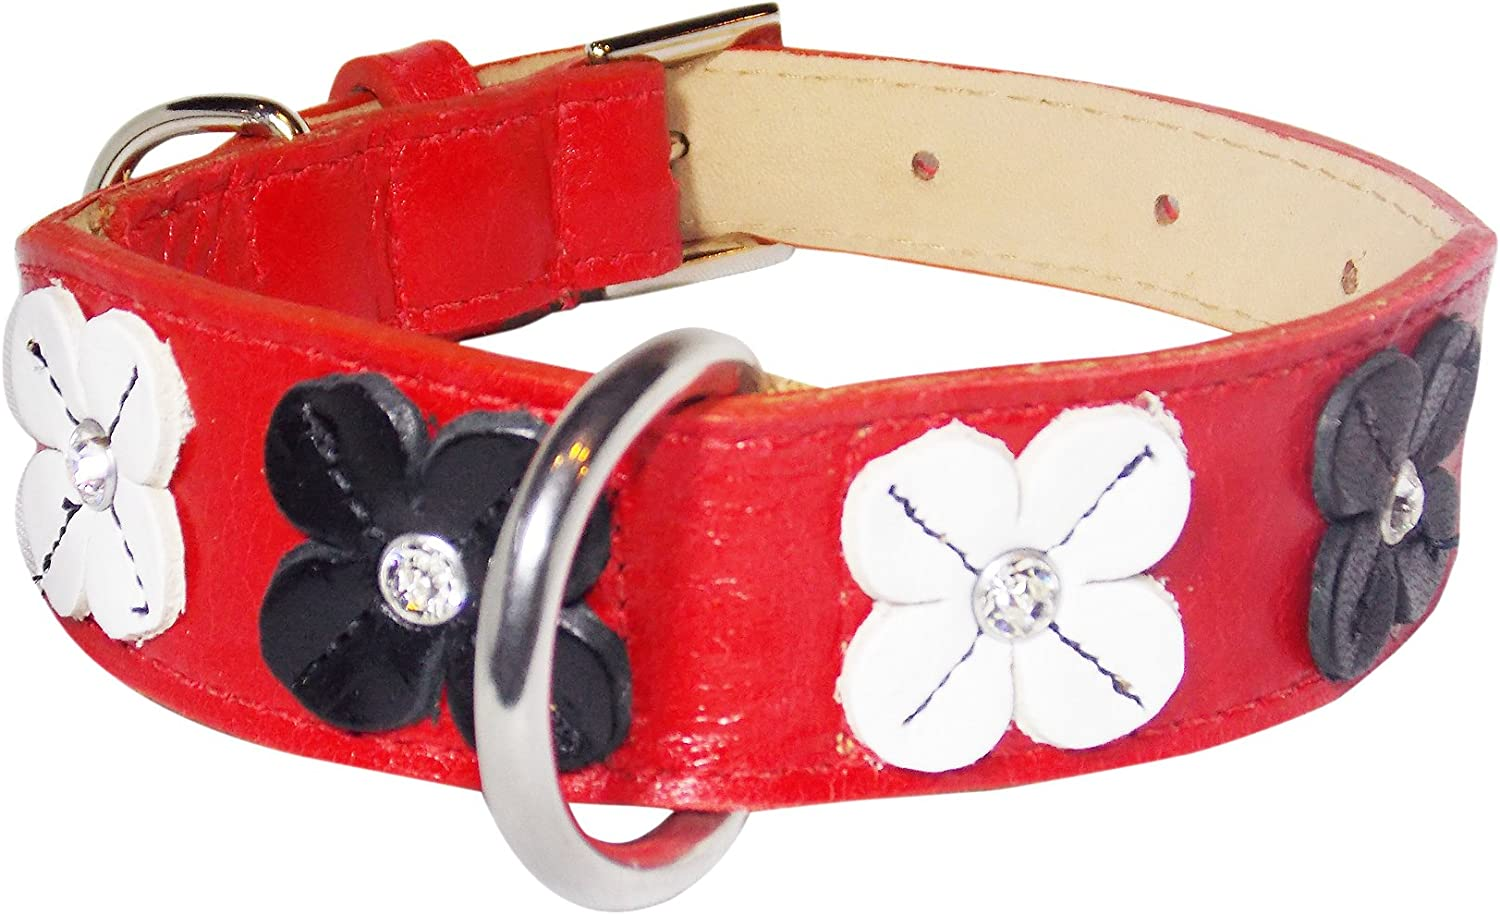 POOCHEE DESIGNS Flower Rivet Tapered Dog Collar, Small Size 911, Red with Black and White Flowers